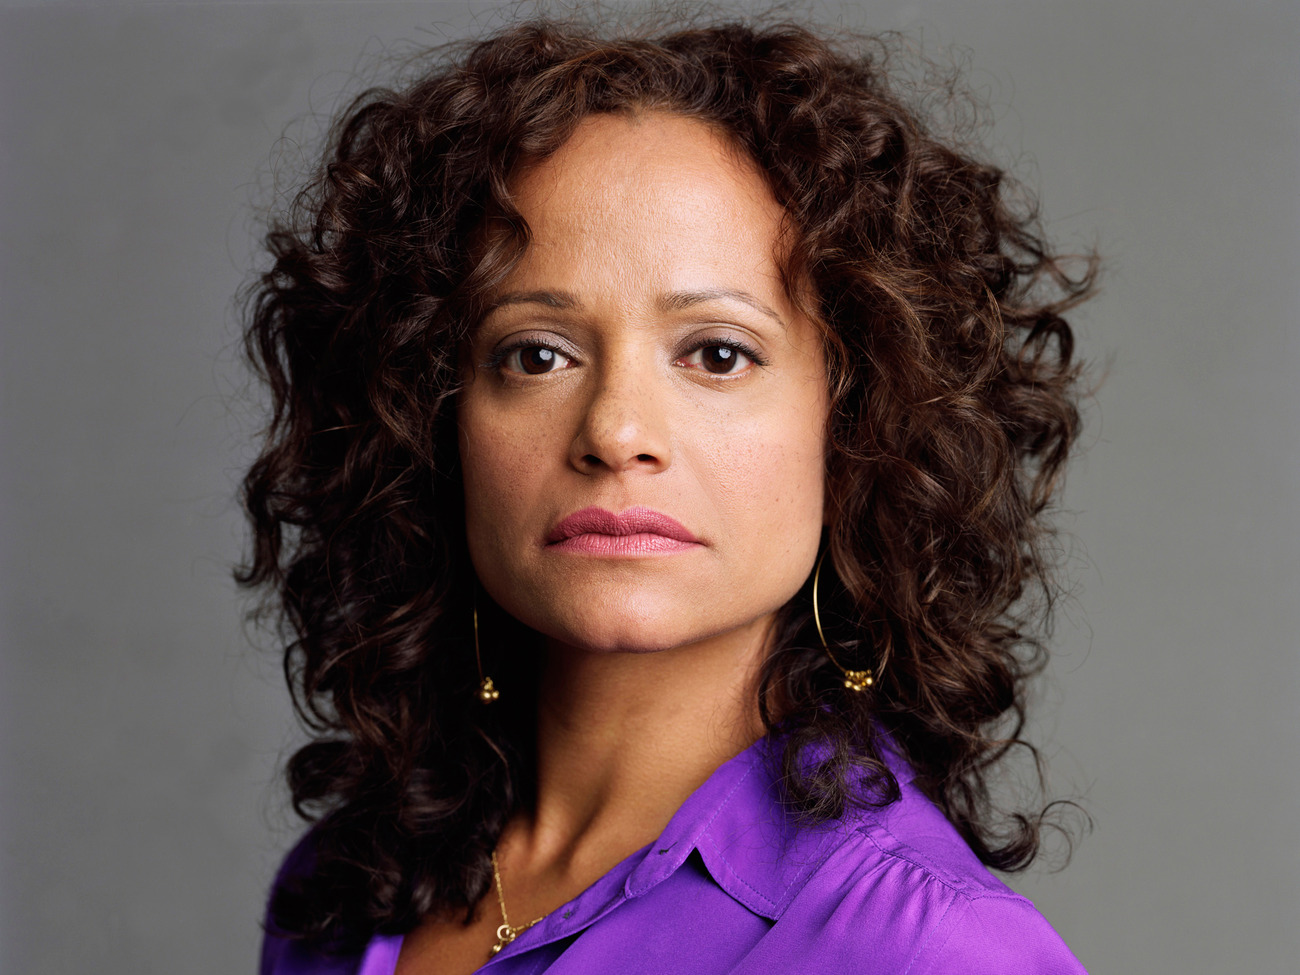 Judy Reyes nude (45 foto and video), Pussy, Leaked, Boobs, legs 2017